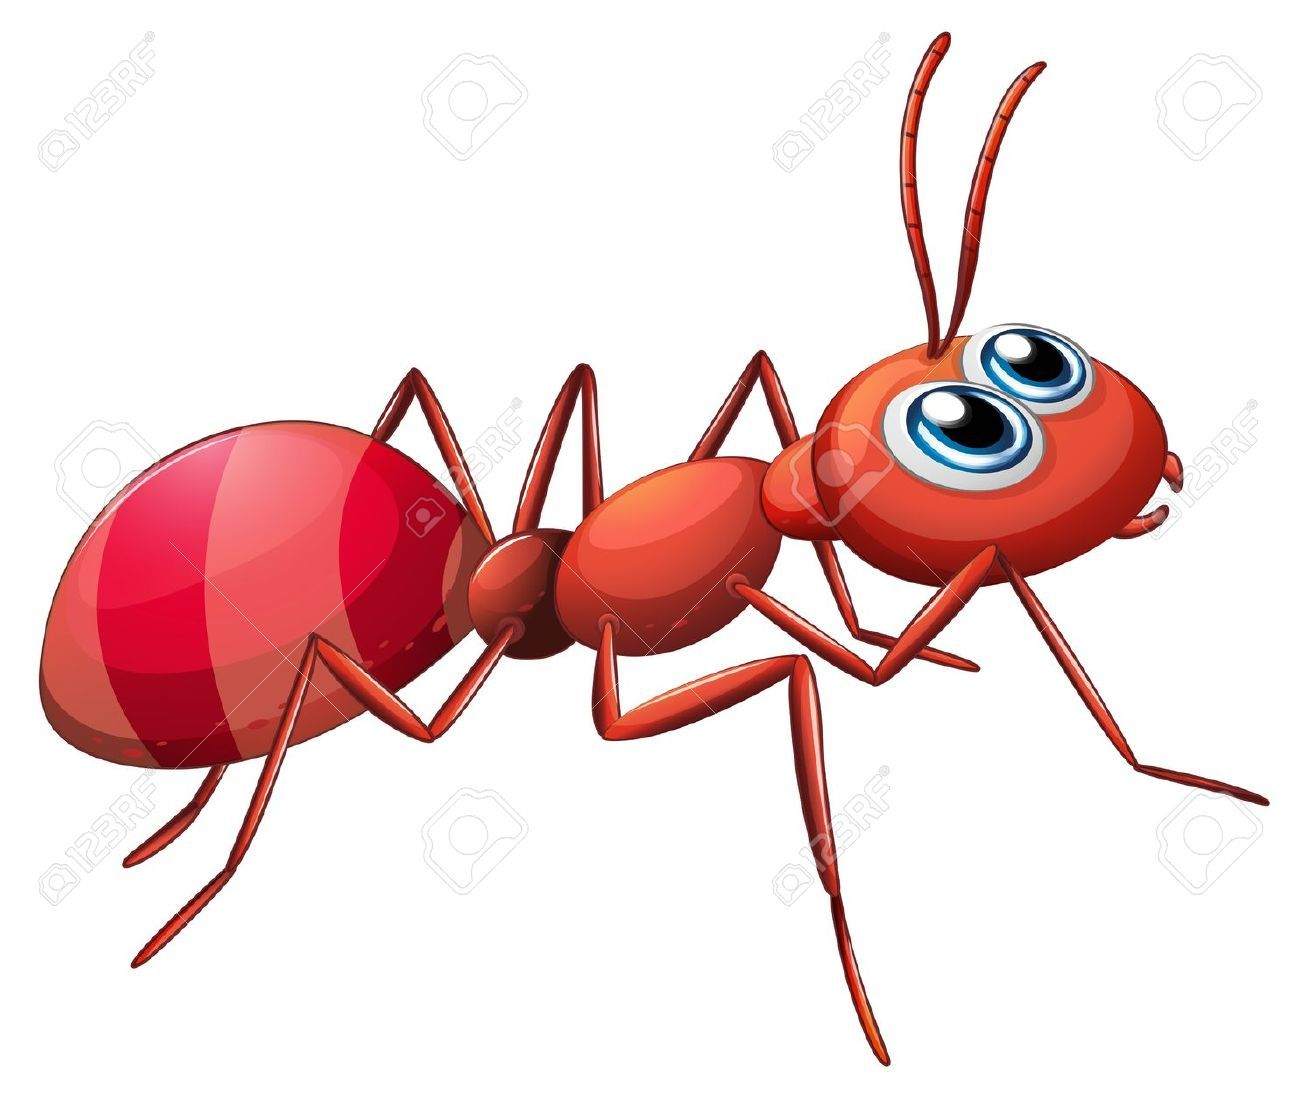 Ant images clipart png transparent Picture of ant clipart 5 » Clipart Portal png transparent